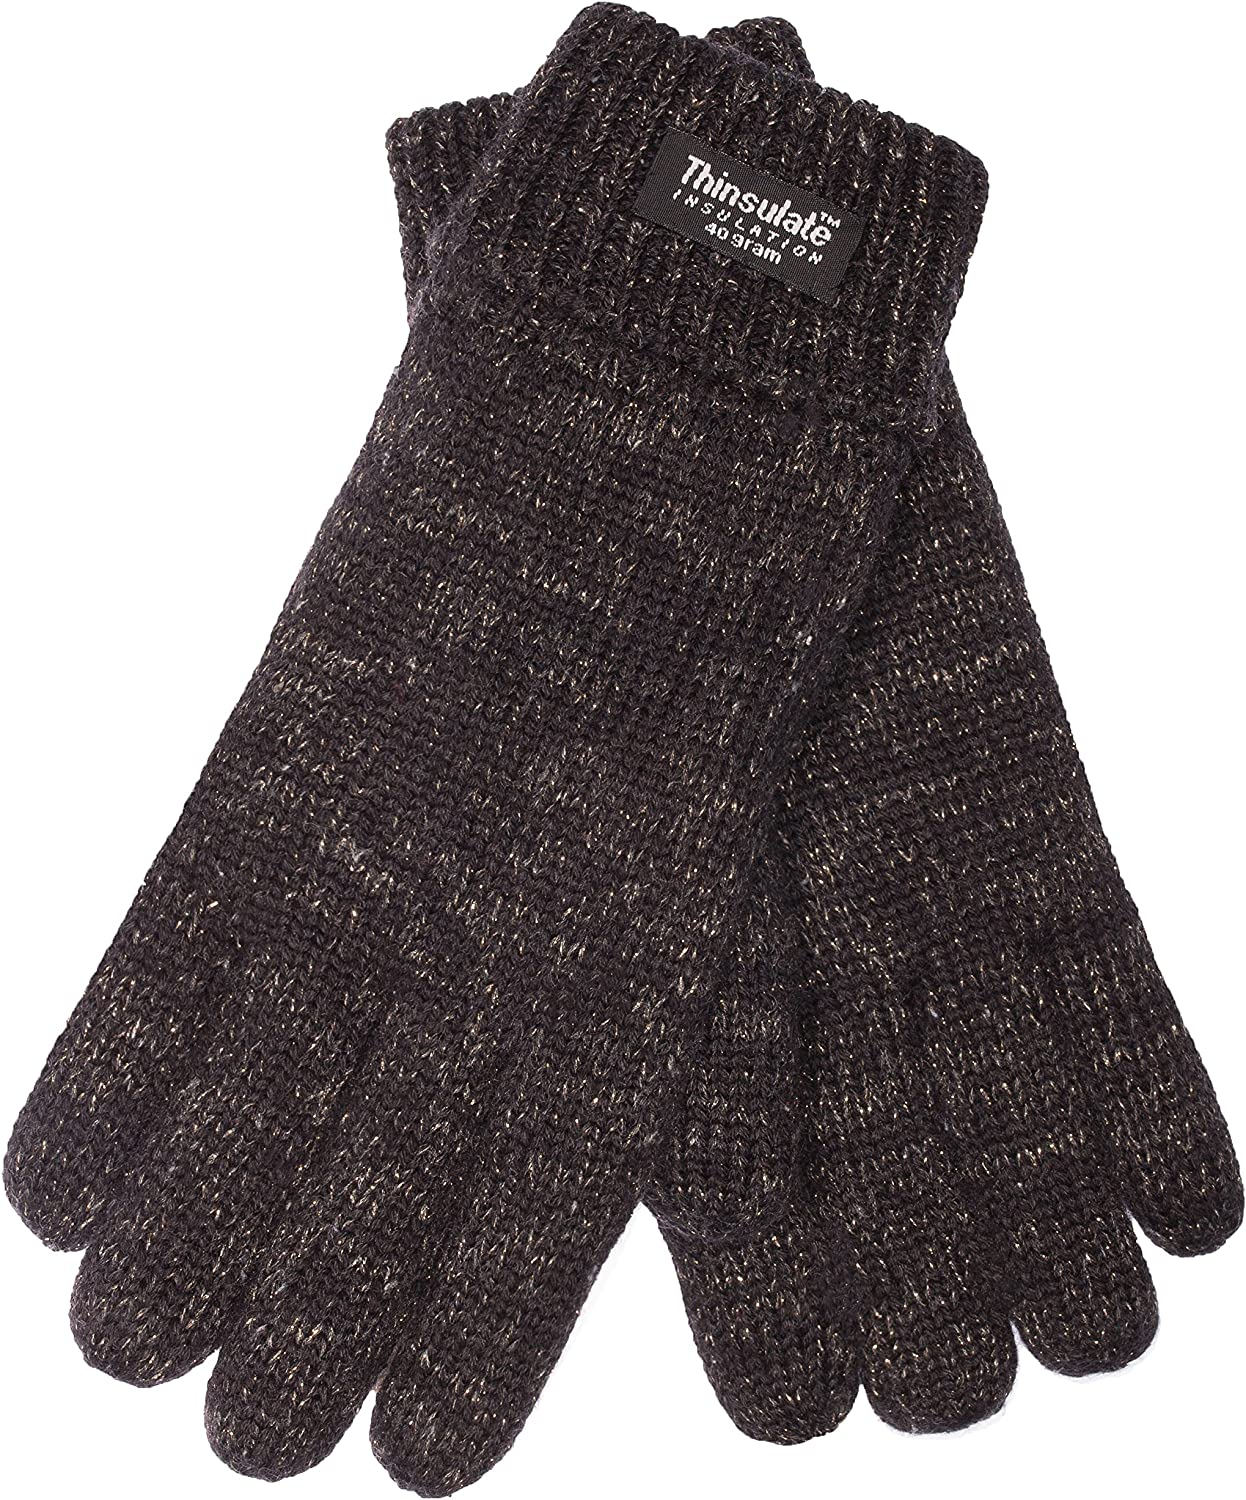 EEM ladies knit gloves JETTE with Thinsulate thermal lining, 100% wool, black gold XL